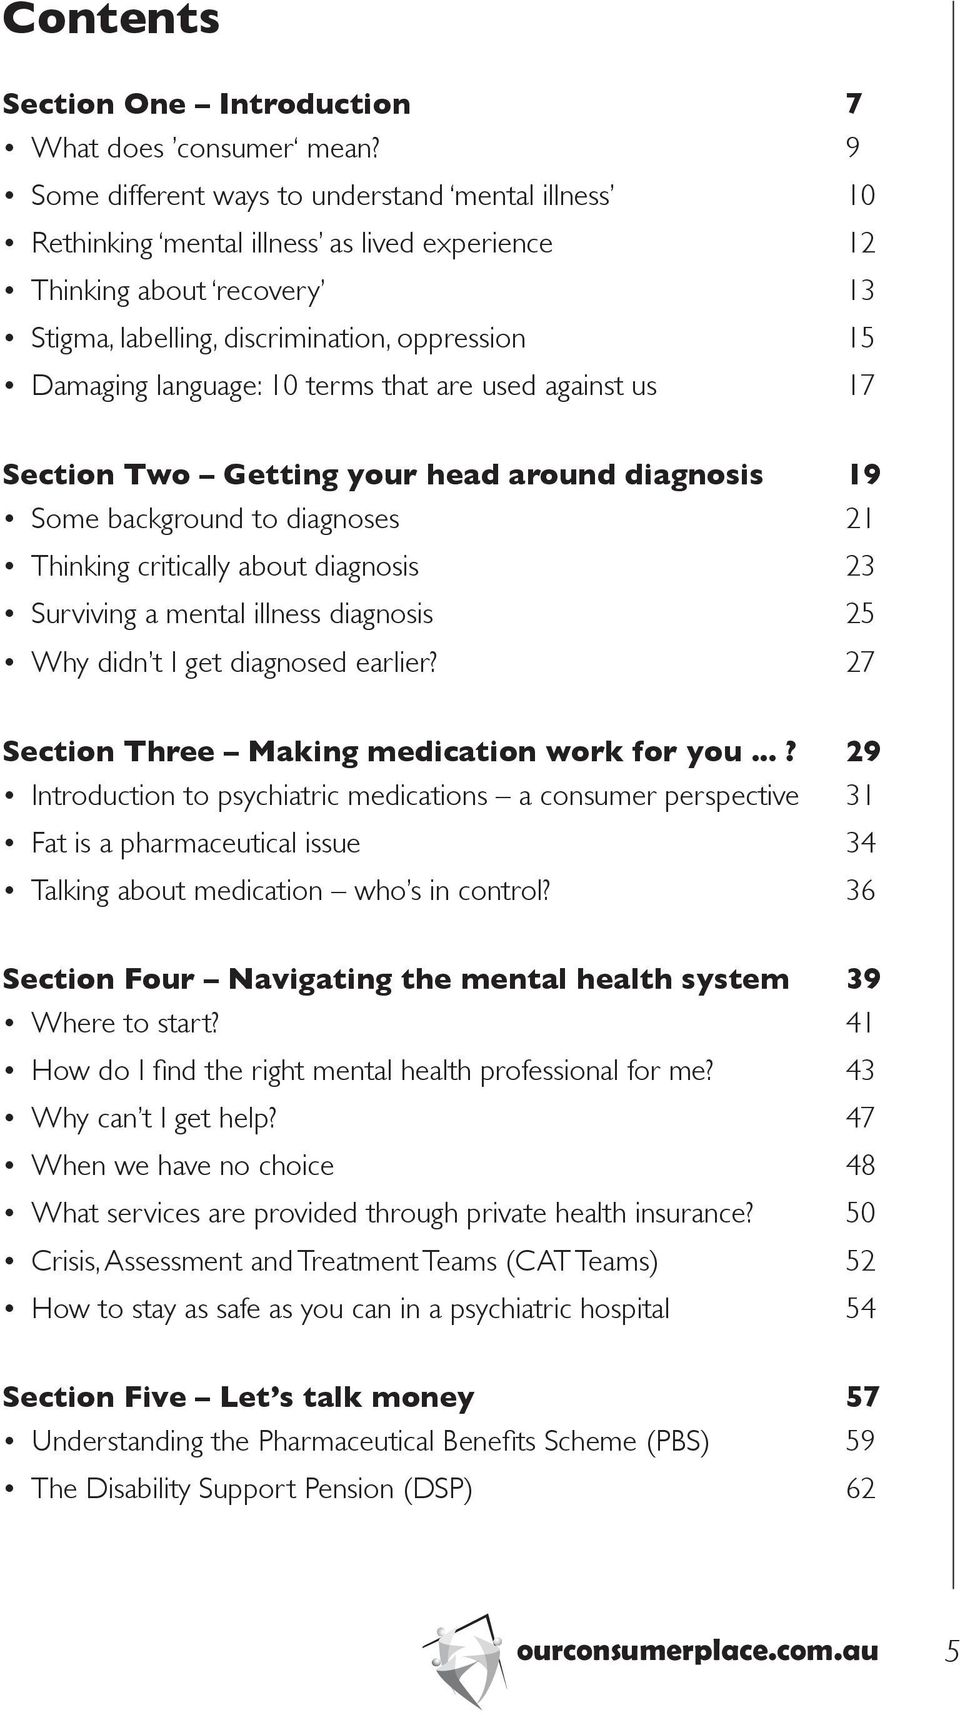 10 terms that are used against us 17 Section Two Getting your head around diagnosis 19 Some background to diagnoses 21 Thinking critically about diagnosis 23 Surviving a mental illness diagnosis 25